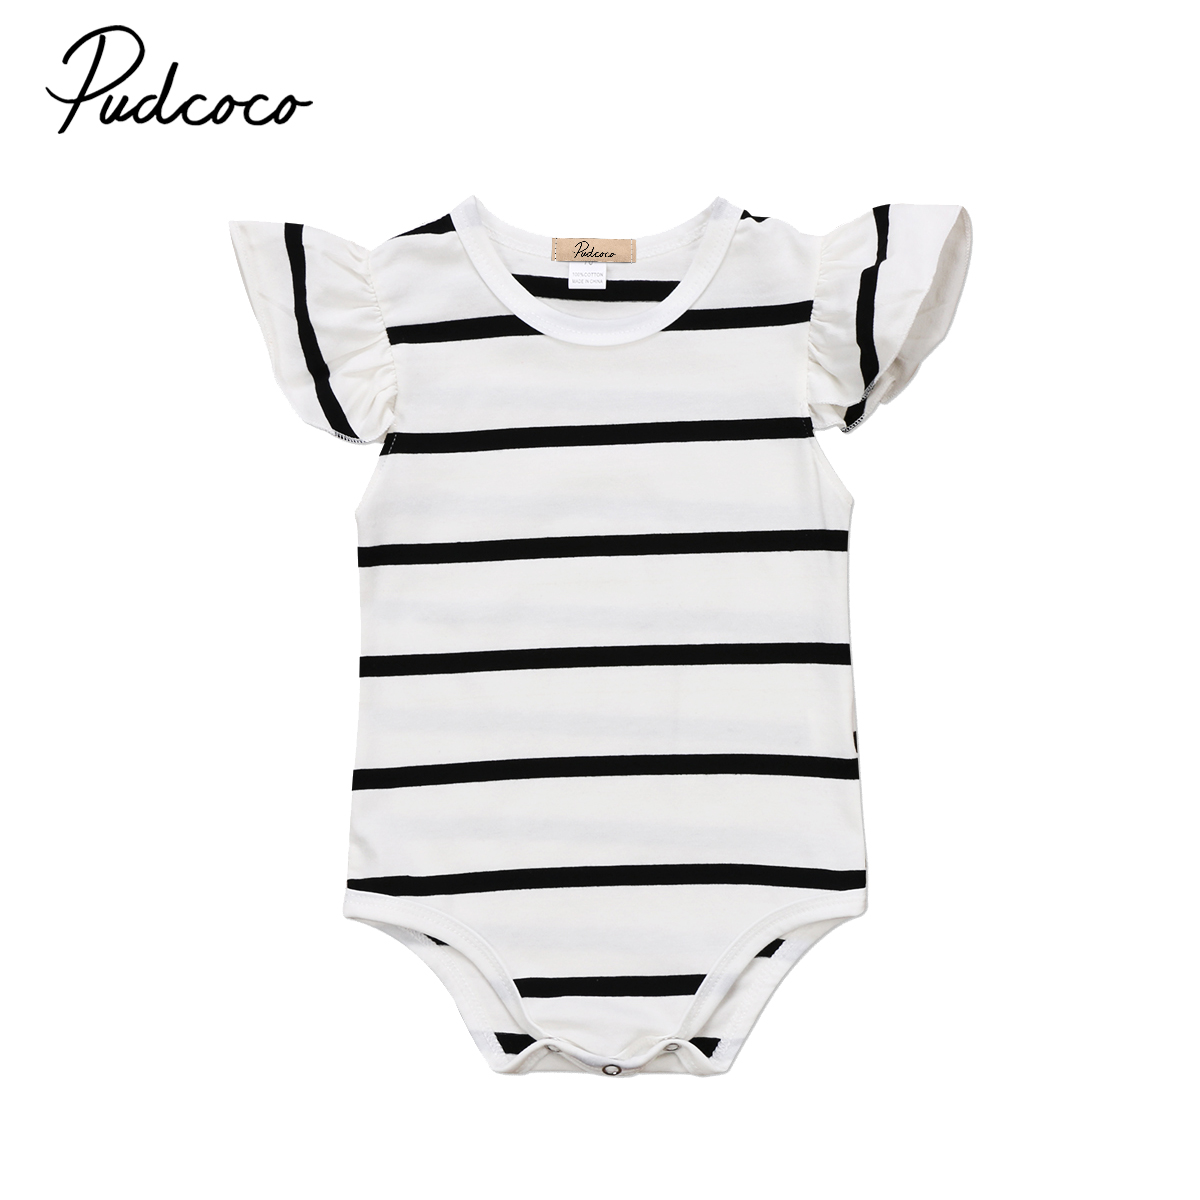 Cute Striped Baby Girs Romper Newborn Infant Baby Girls Raffle Shoulder Black White Romper Jumpsuit Baby Girl Clothes Outfit Rompers Newborn Jumpsuit Babyjumpsuit Baby Girl Aliexpress